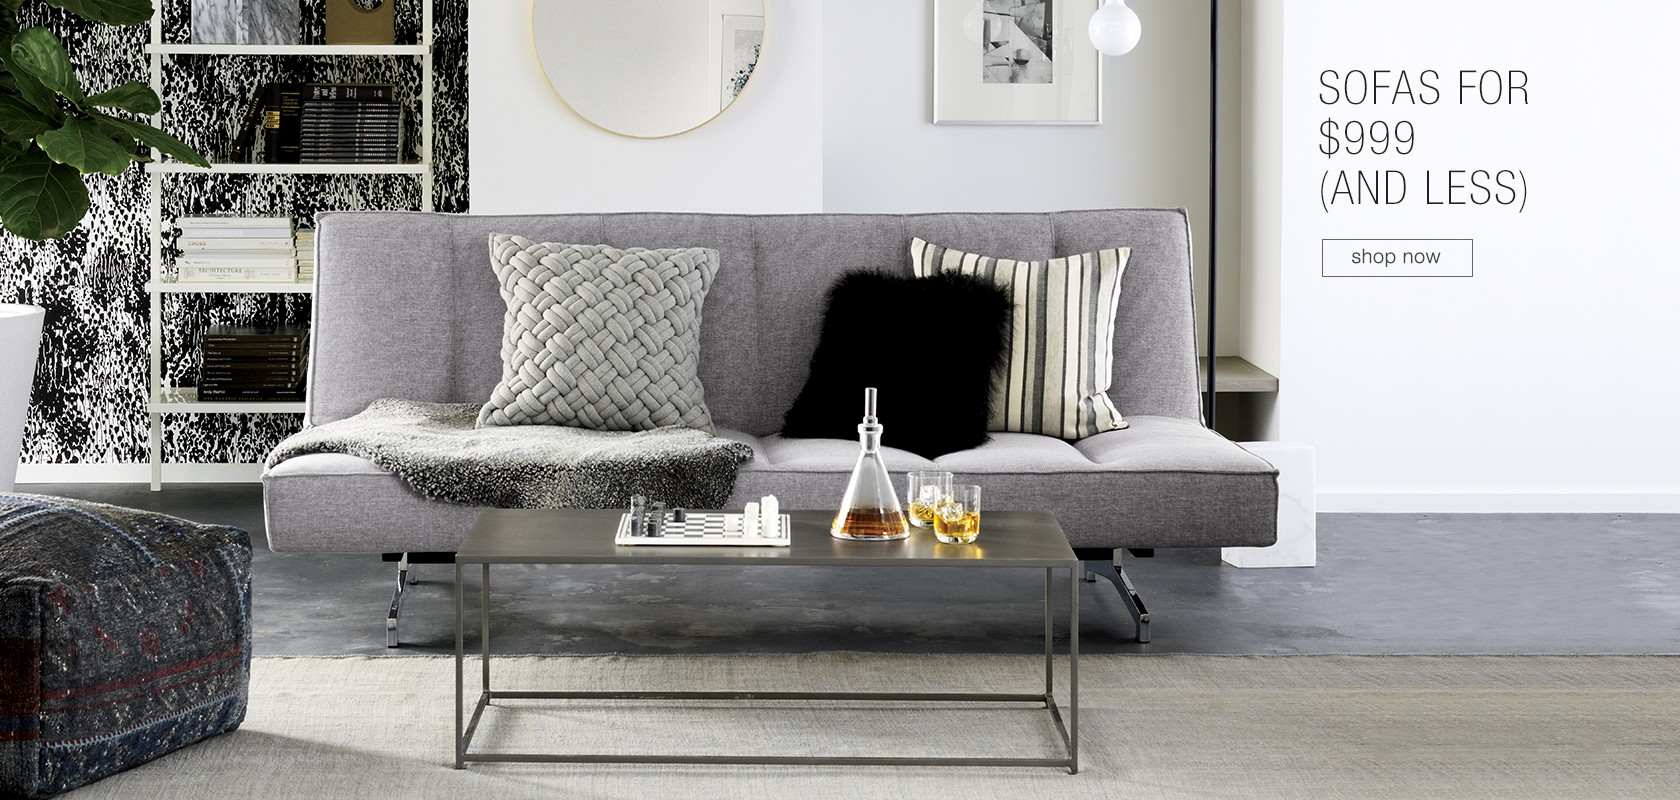 sofas for $999 (and less)